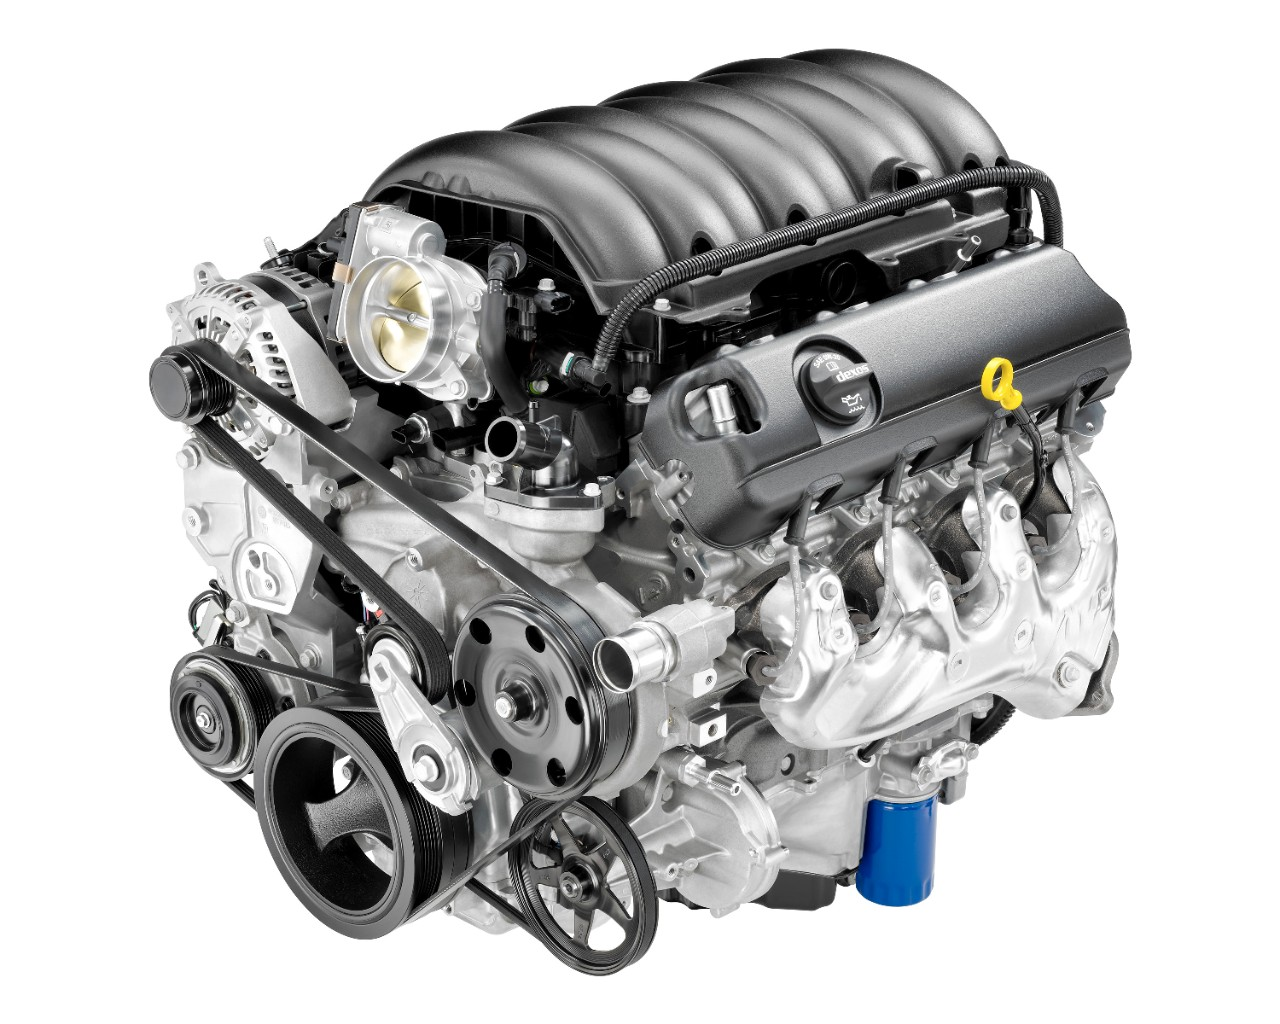 2010 silverado engine specs diagram